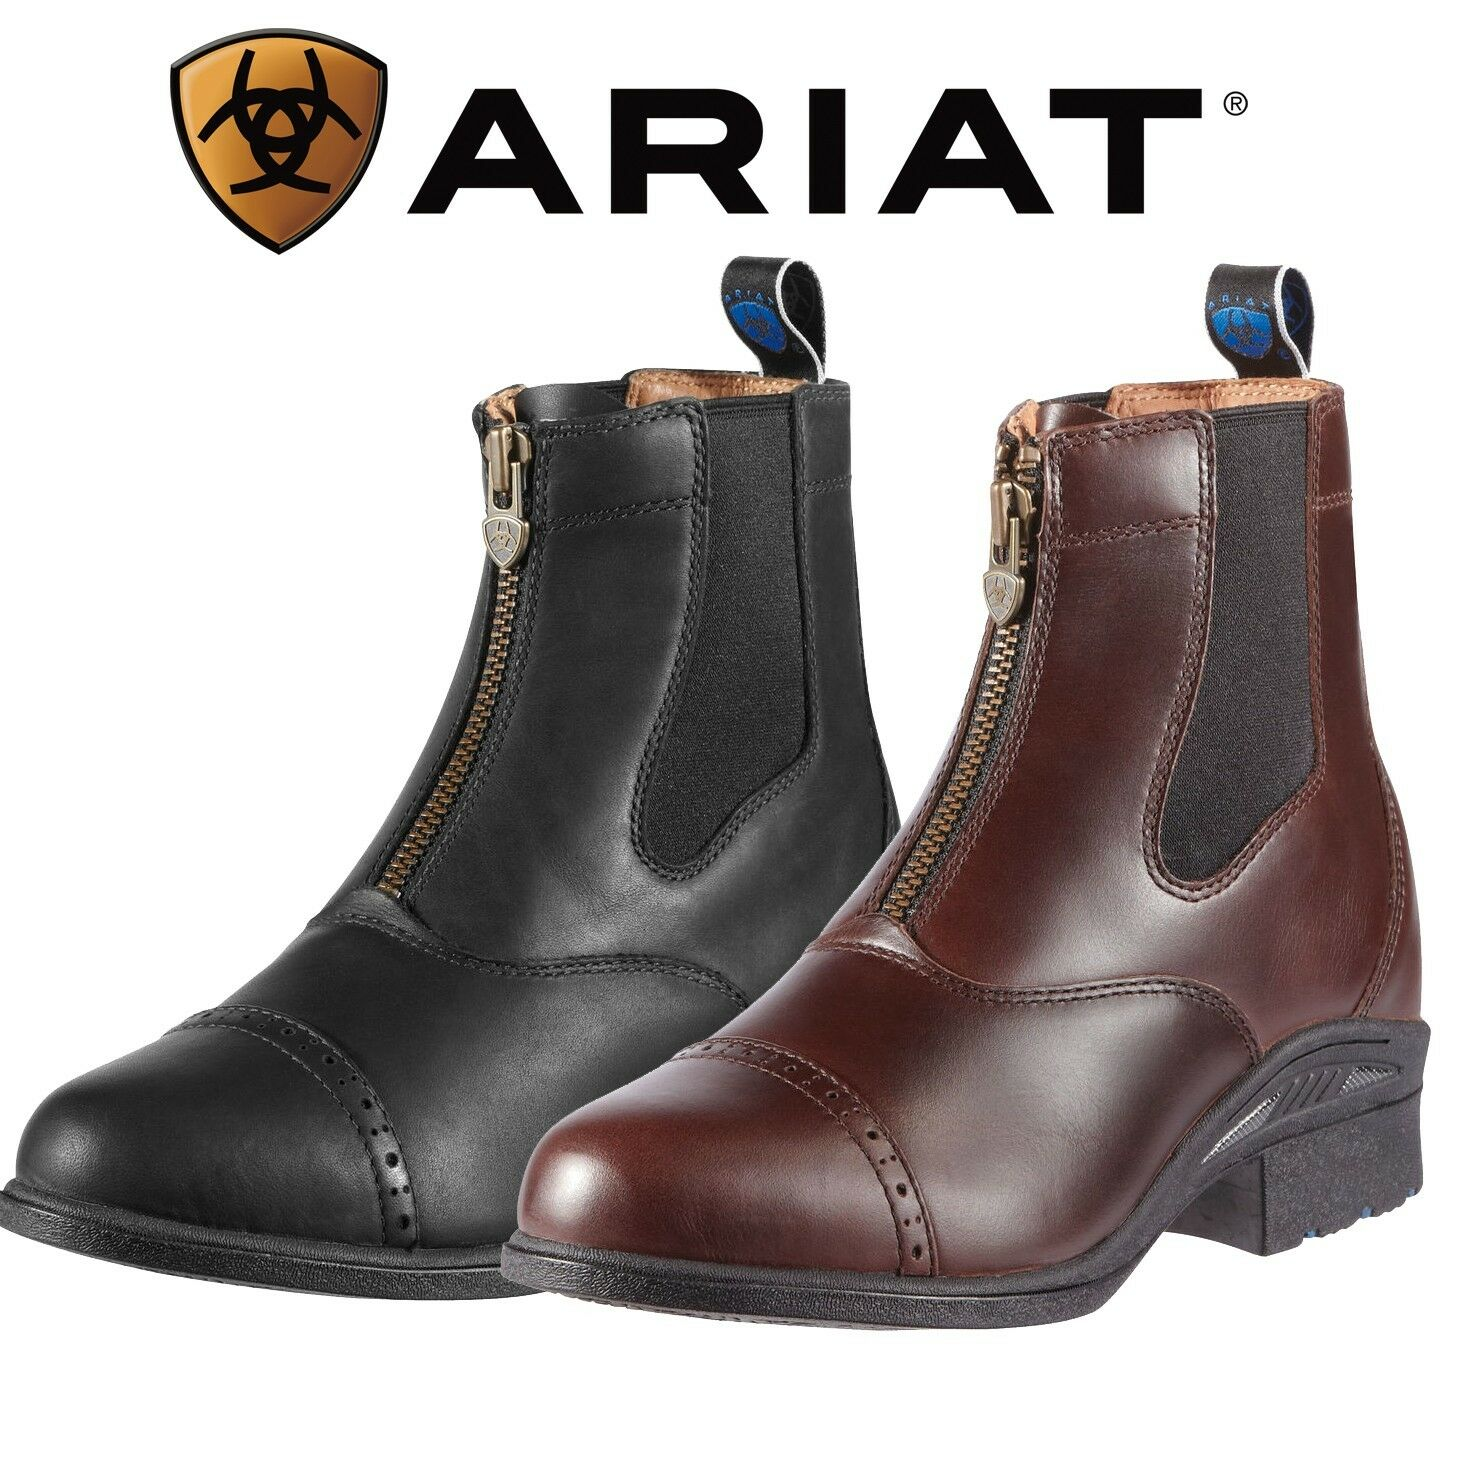 Para Hombre botas Ariat Devon Pro VX Jodhpur-Negro y Marrón disponible